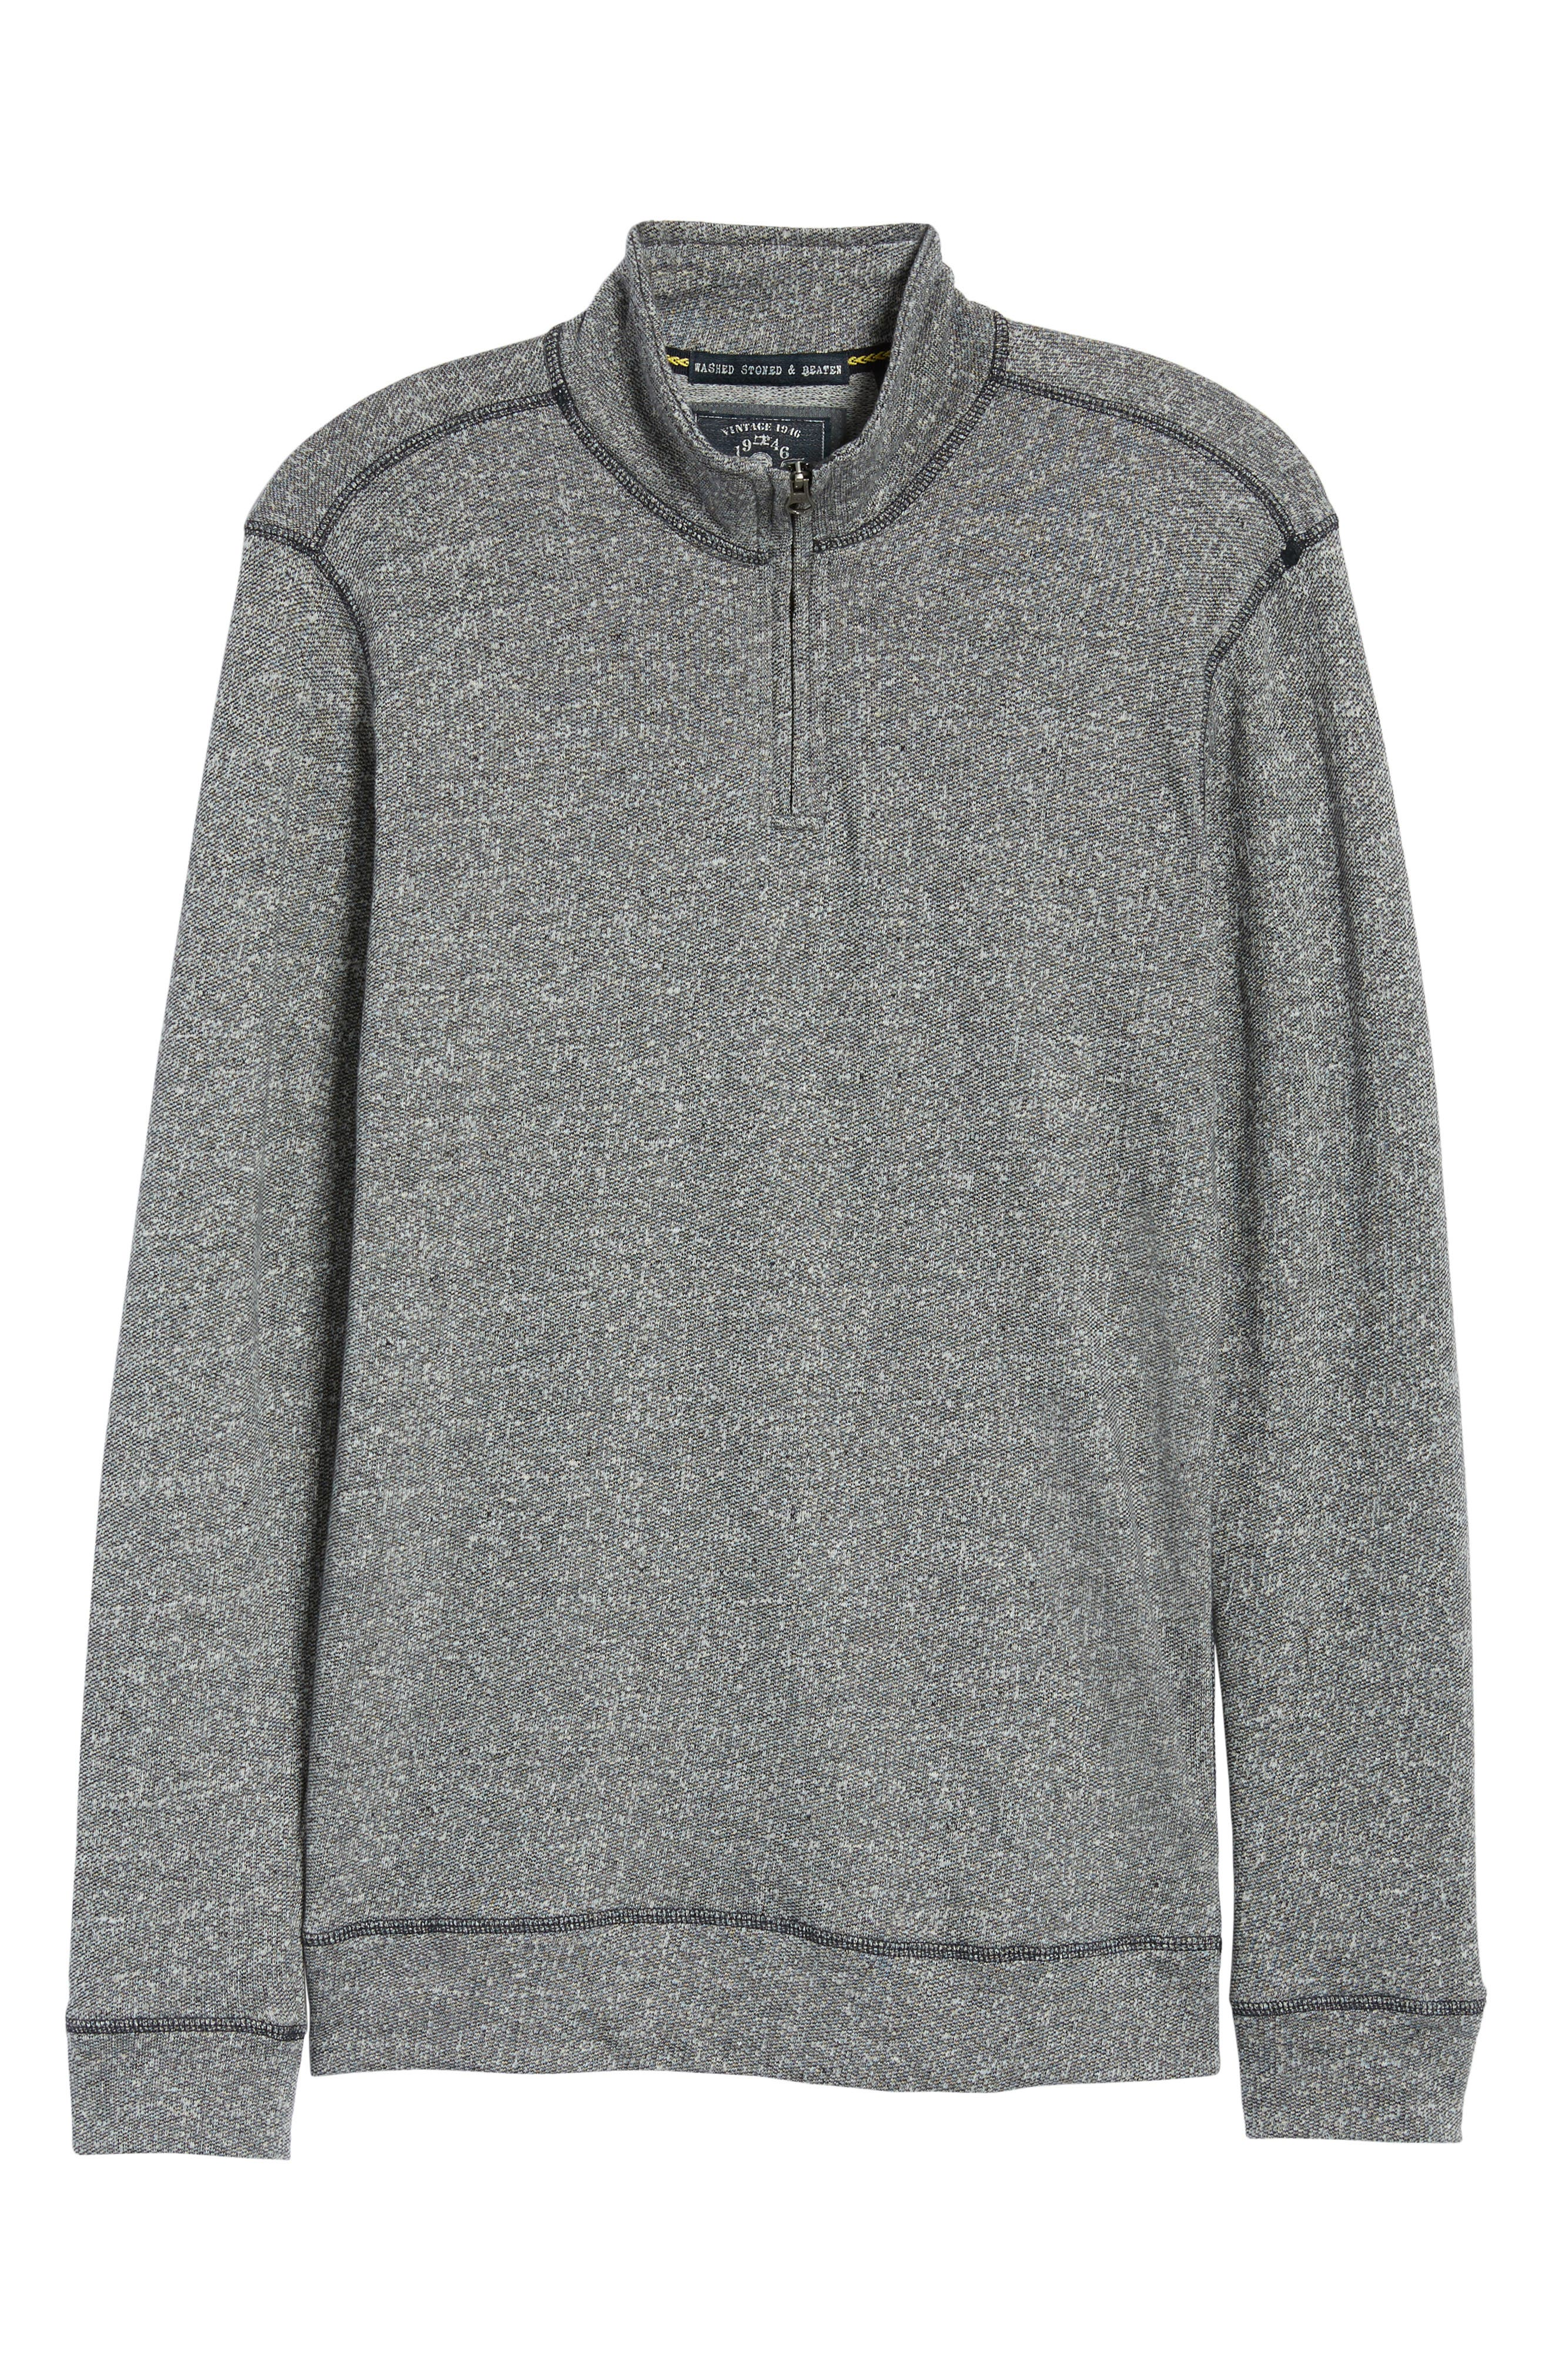 Regular Fit French Terry Pullover,                             Alternate thumbnail 6, color,                             010